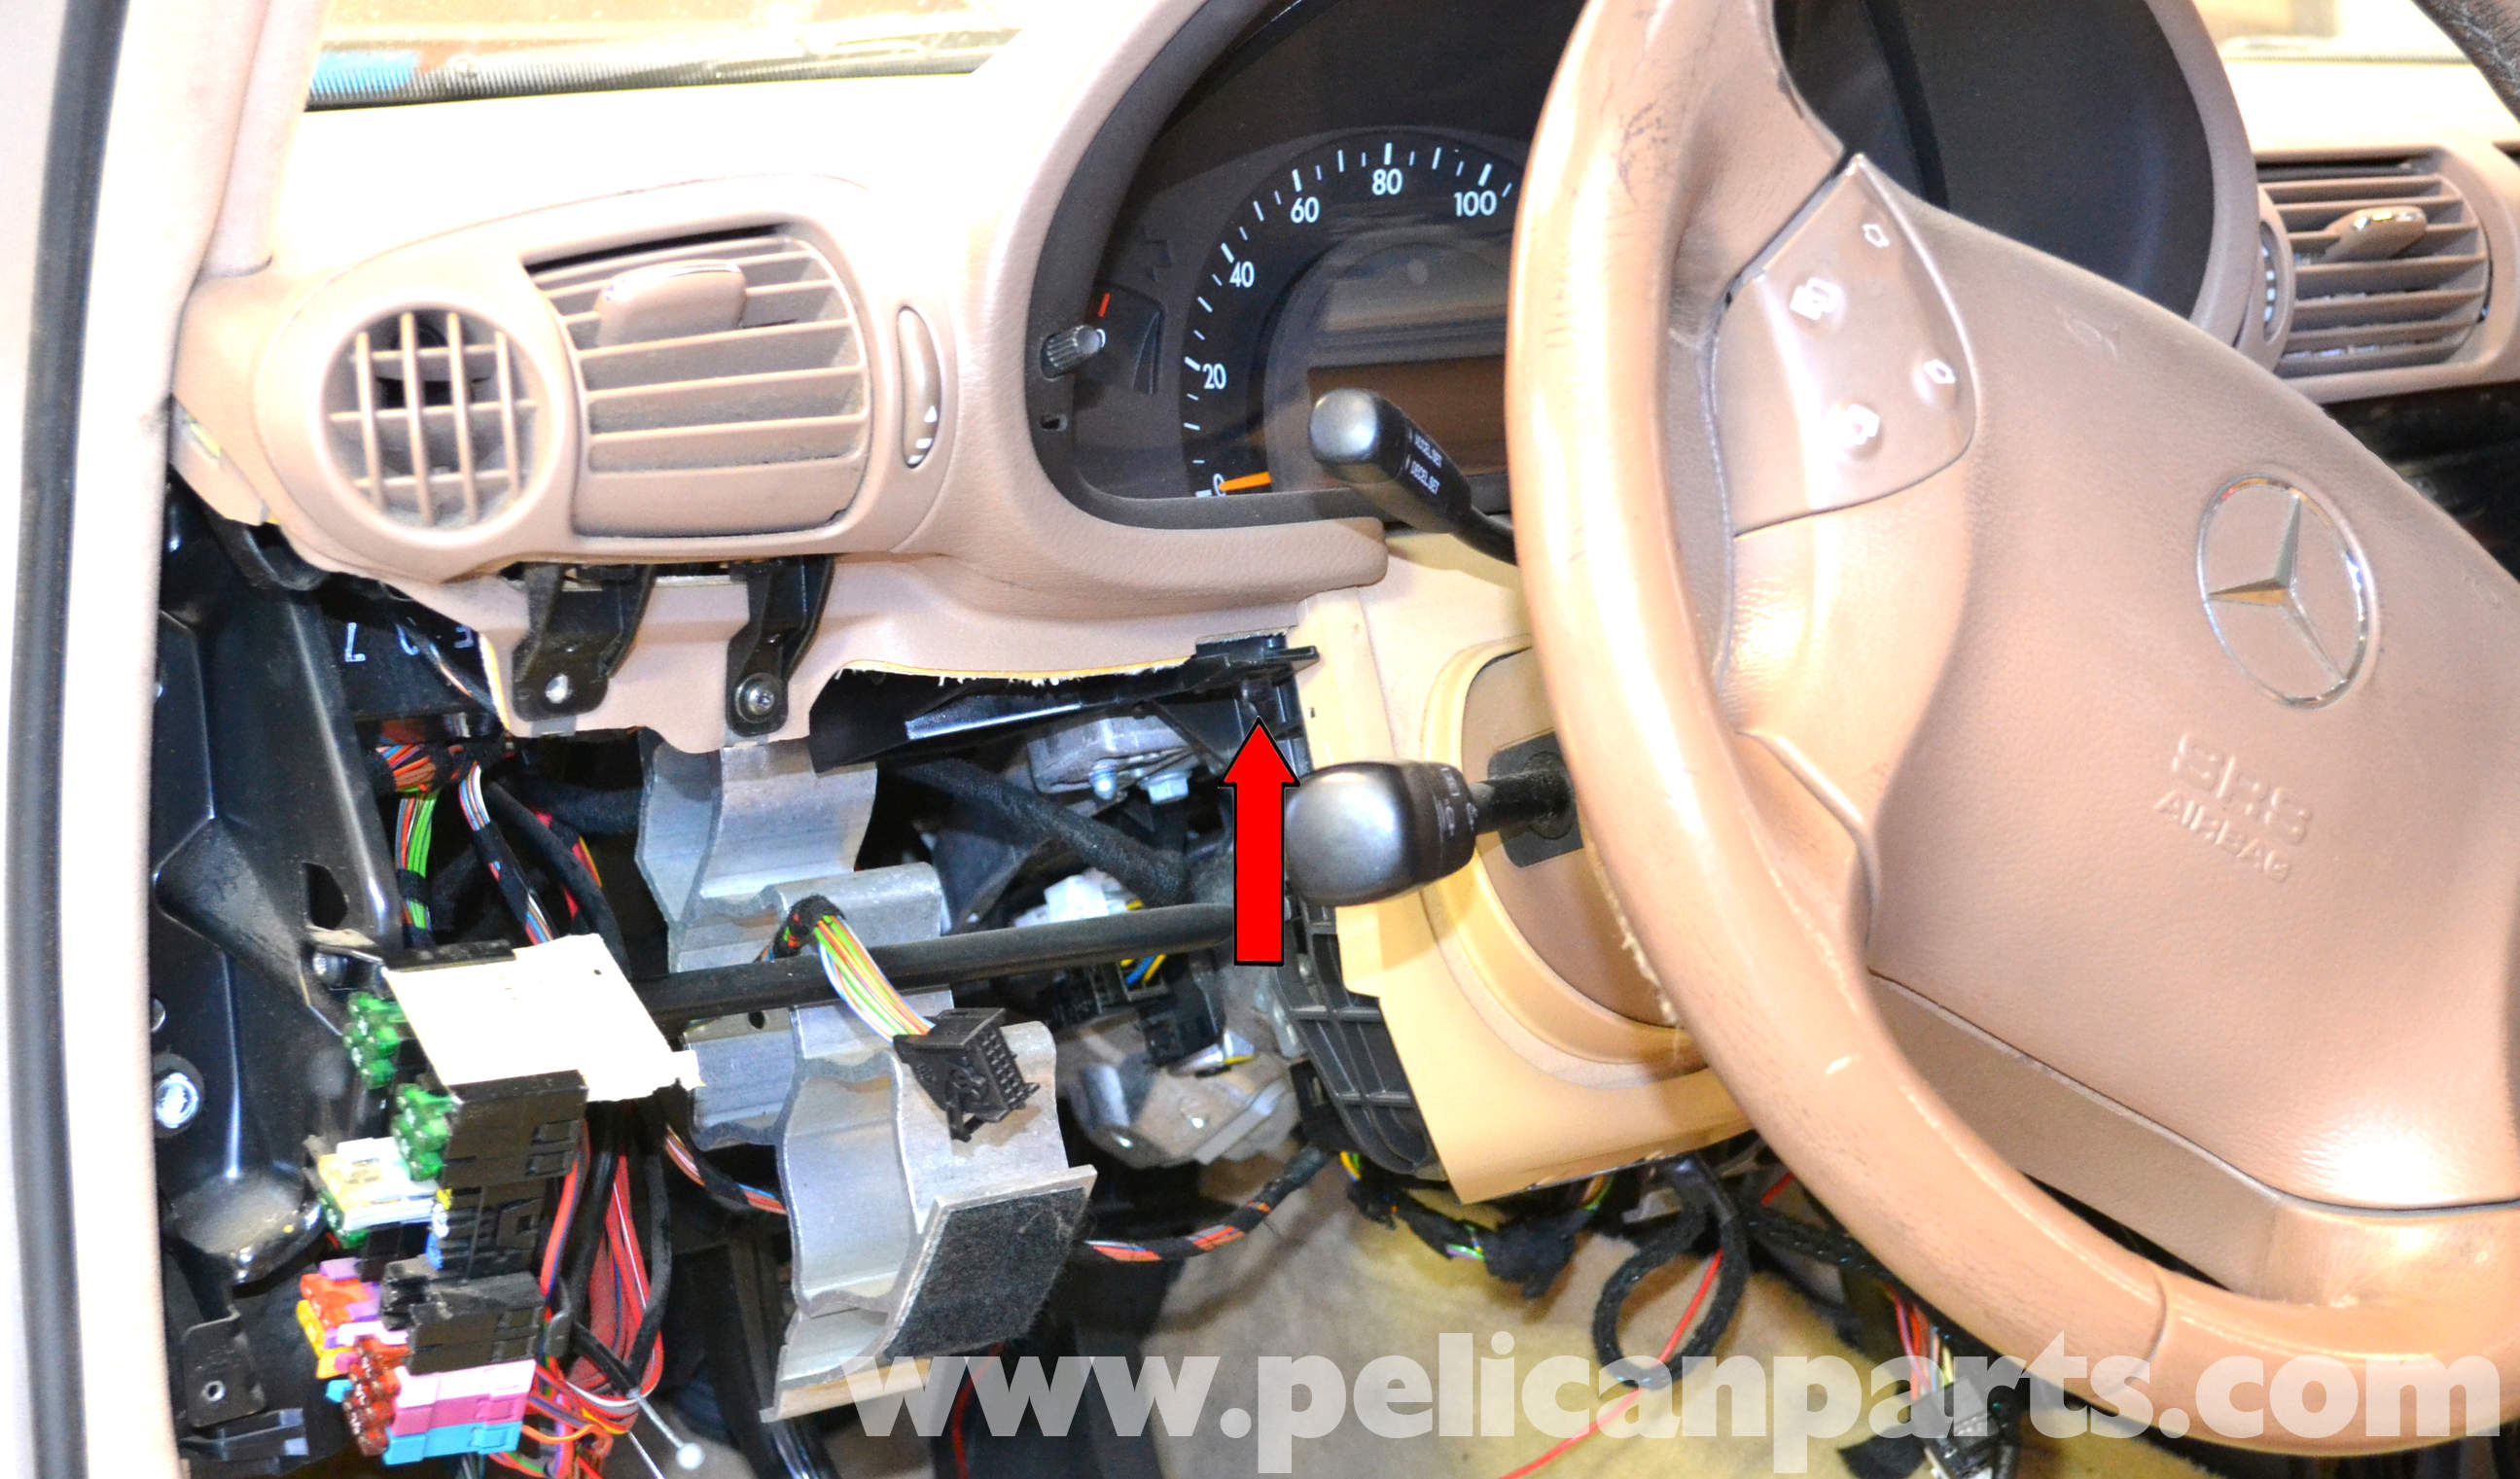 Mercedes Benz W203 Lower Driver Side Dash Removal 2001